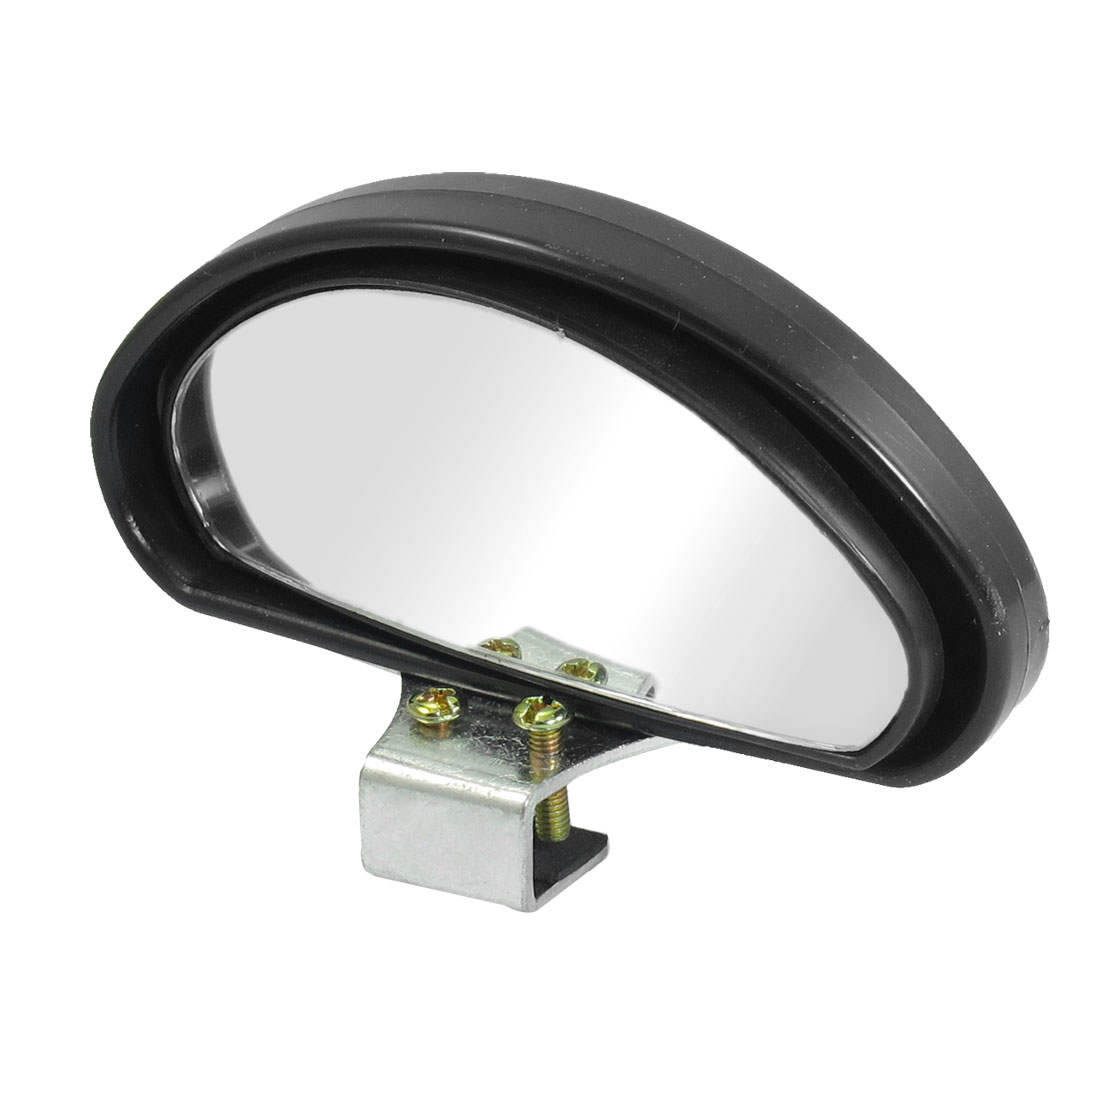 100mmx45mm Black Arch Wide Angle Rearview Blindspot Mirror for Car Truck